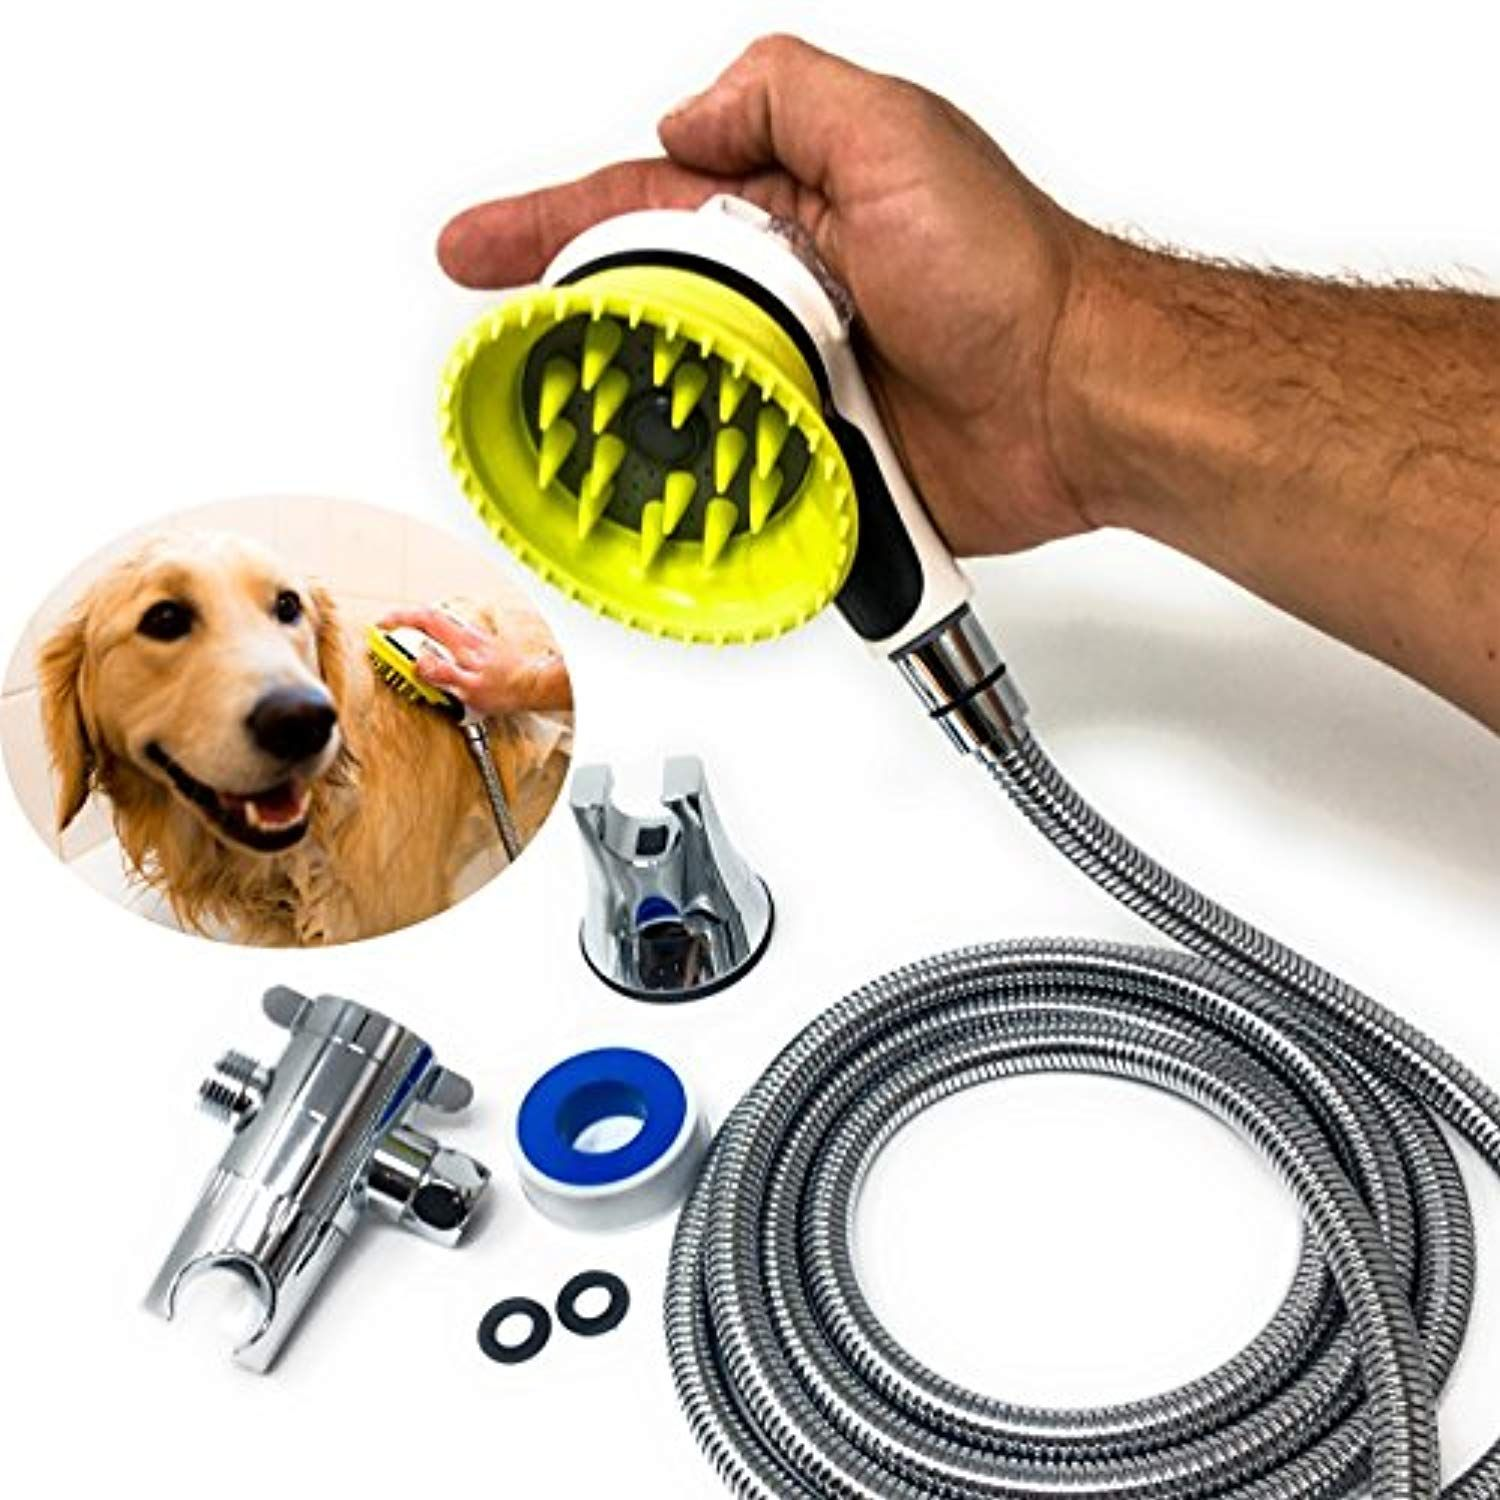 All In One Quality Dog Shower Kit Water Sprayer Brush And Rubber Shield 8 Foot Hose Diverter Suction Cup Holder Dog Shower Suction Cup Holder Dog Wash